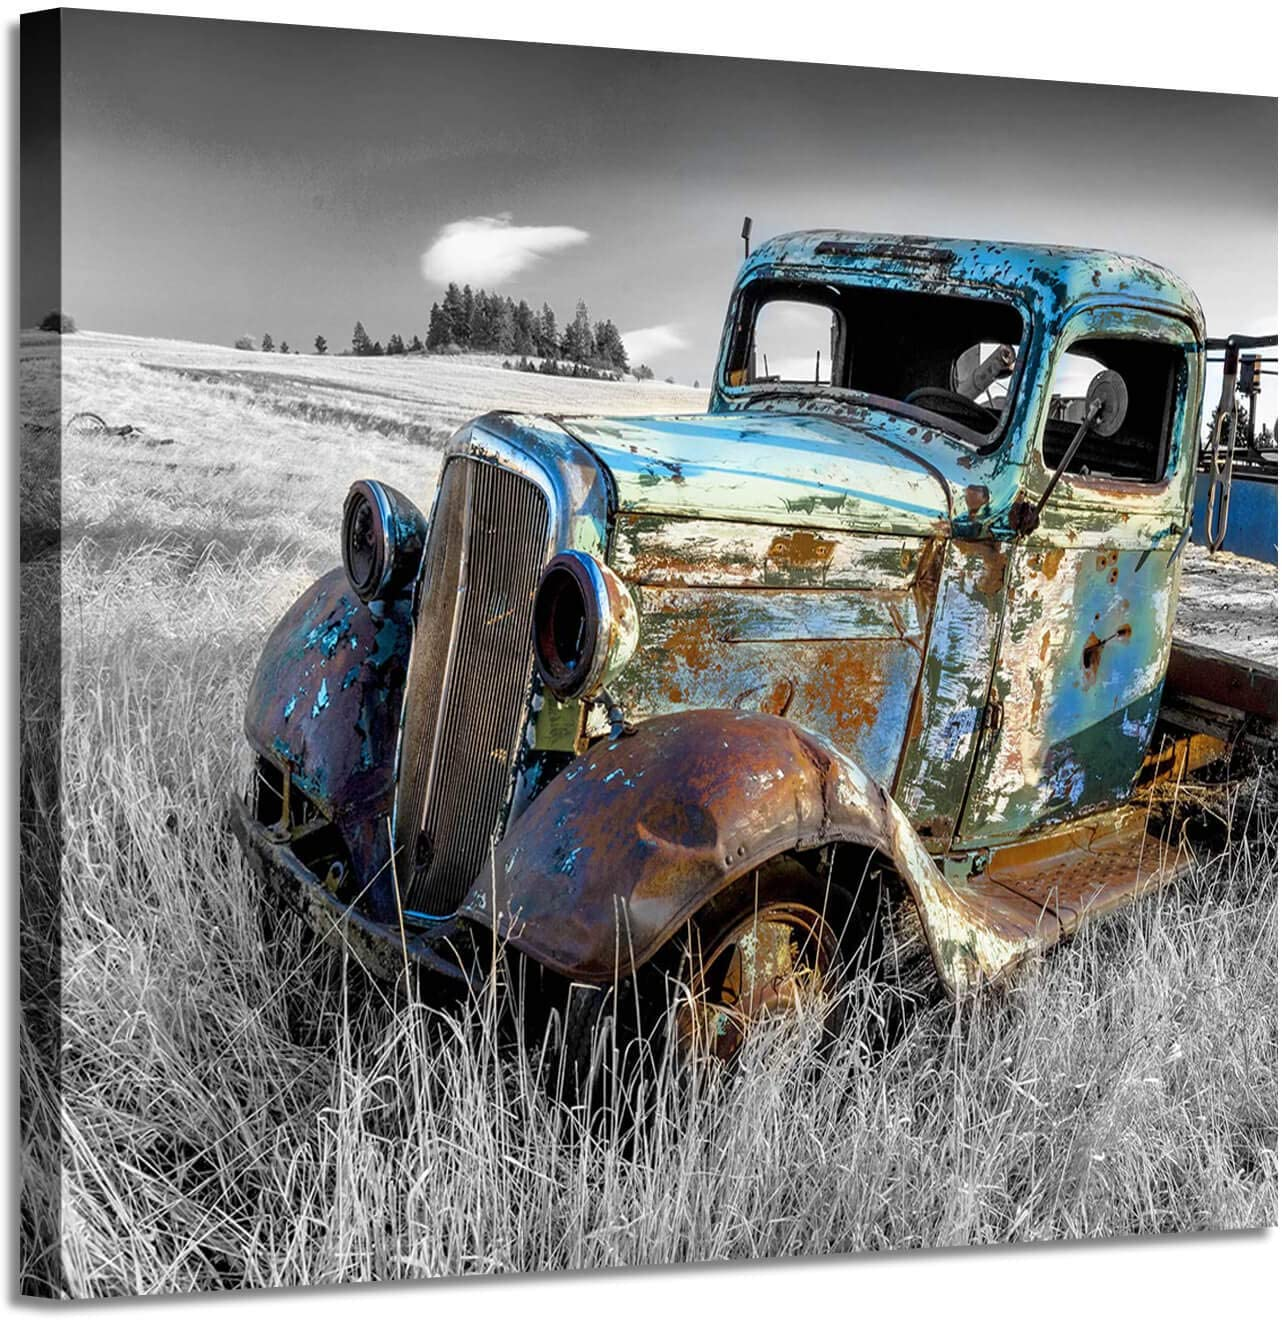 Rusty Car Canvas Wall Art: Old Truck Pictures Paintings Print on Canvas Artwork for Bedrooms (24'' x 18'')